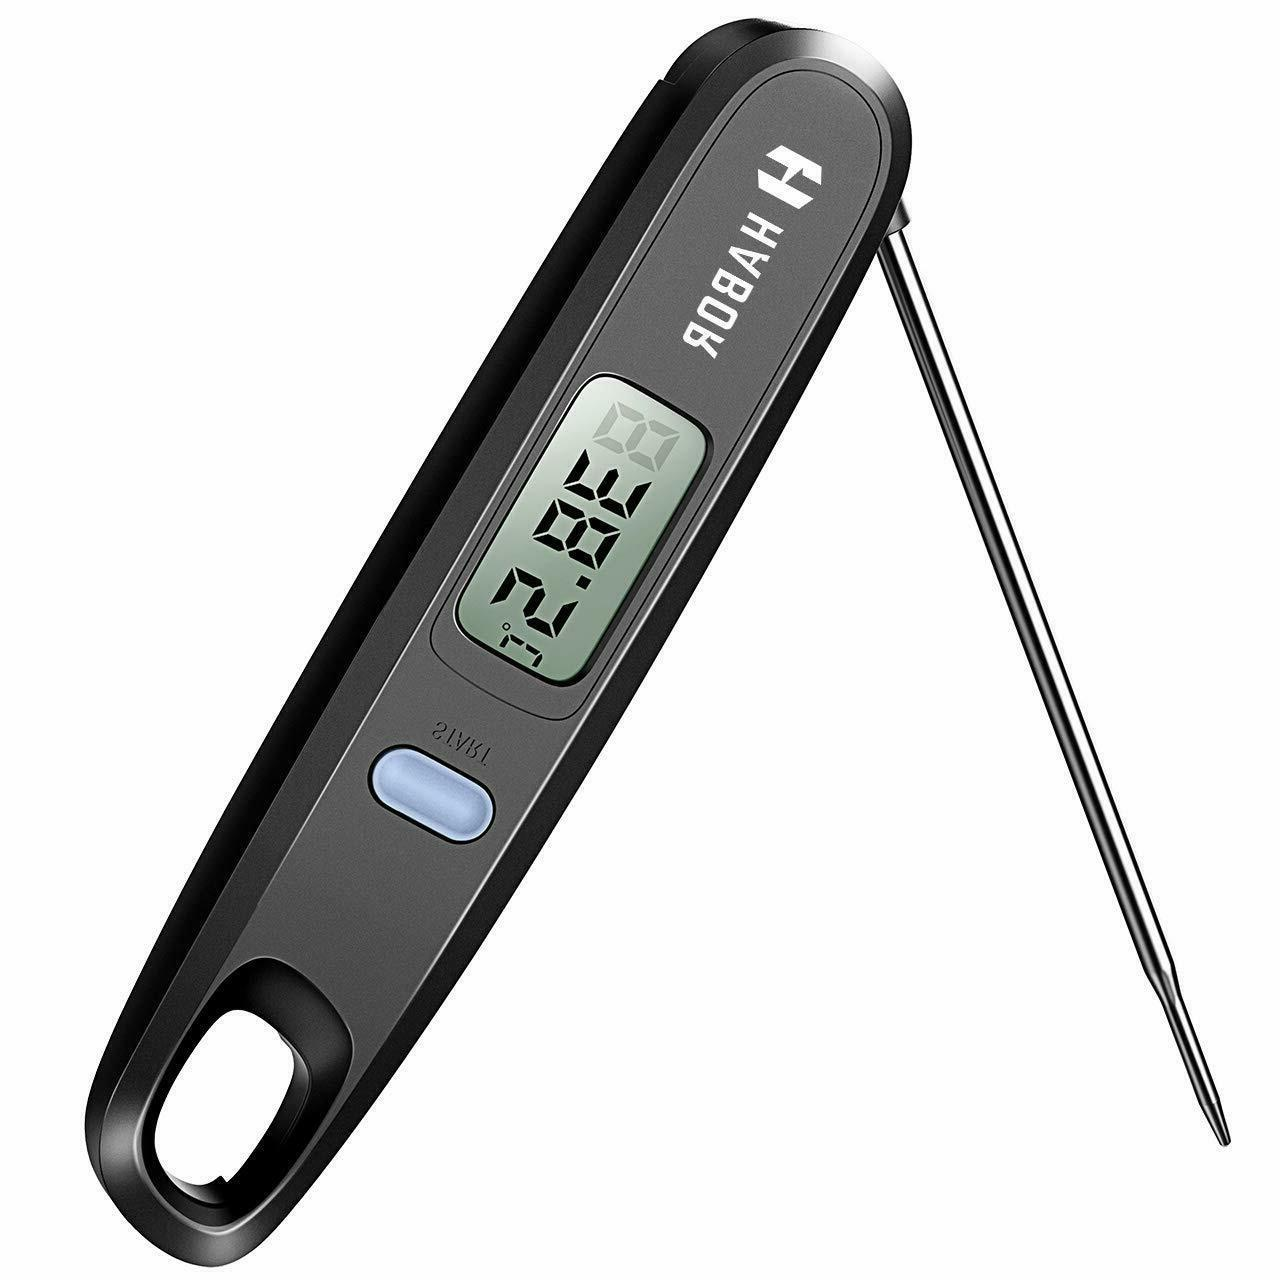 050 magnetic meat thermometer 4 8 inches